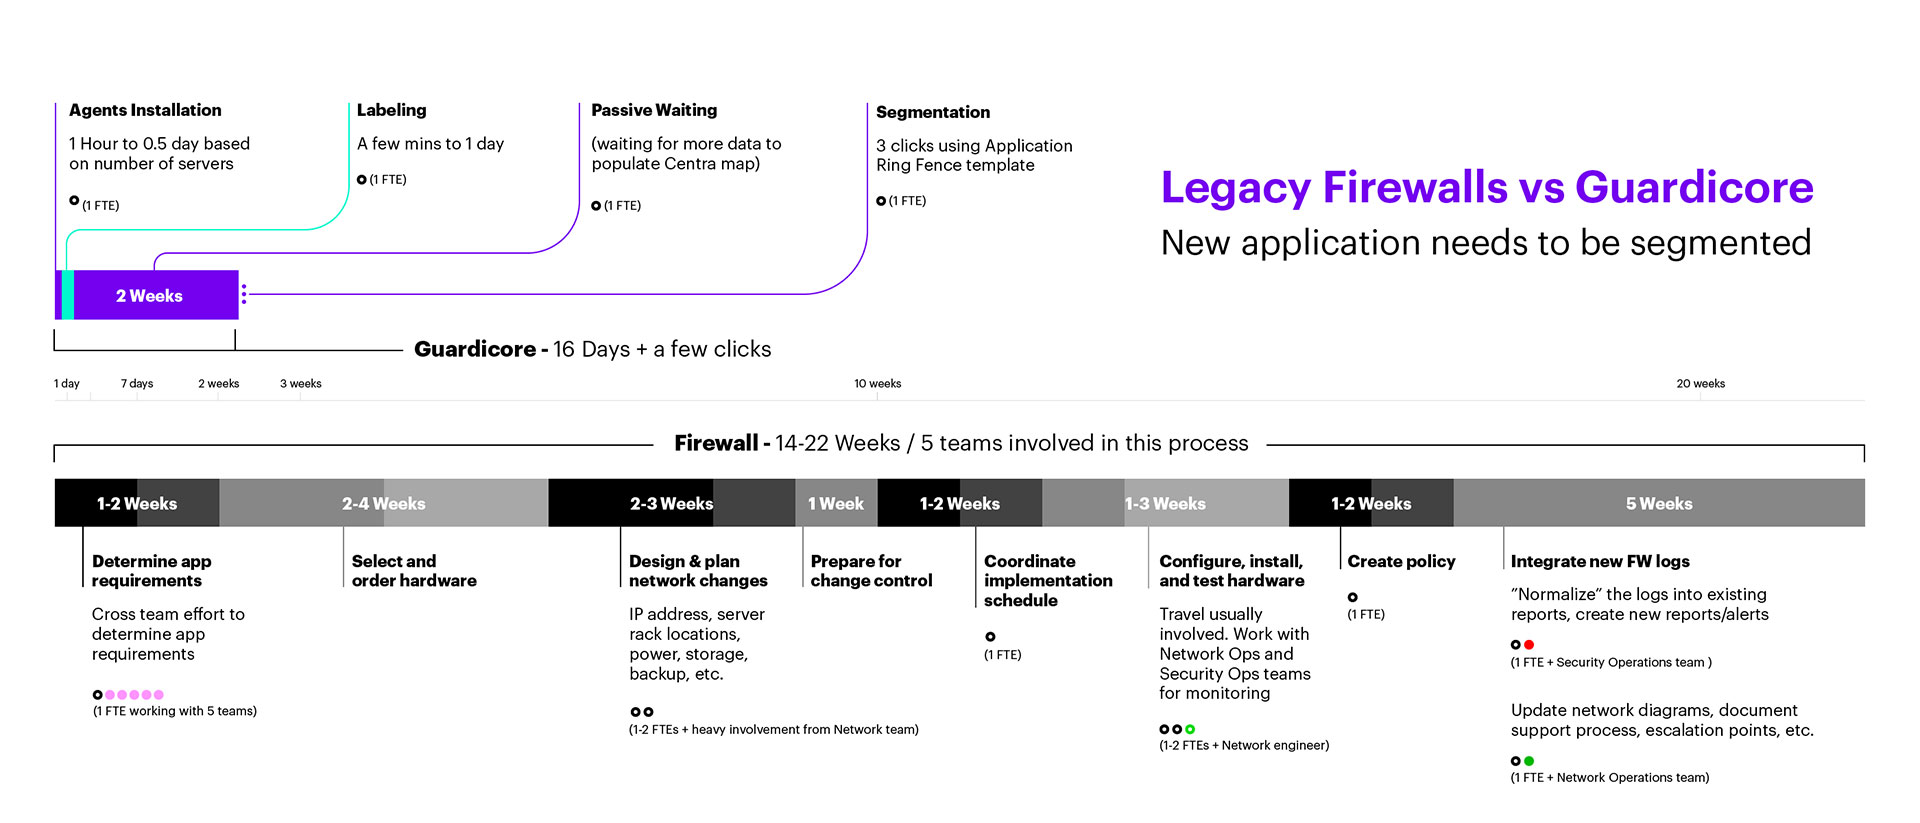 With Guardicore Centra, segmentation takes a mere 16 days, as opposed to 14-22 days with legacy firewalls.